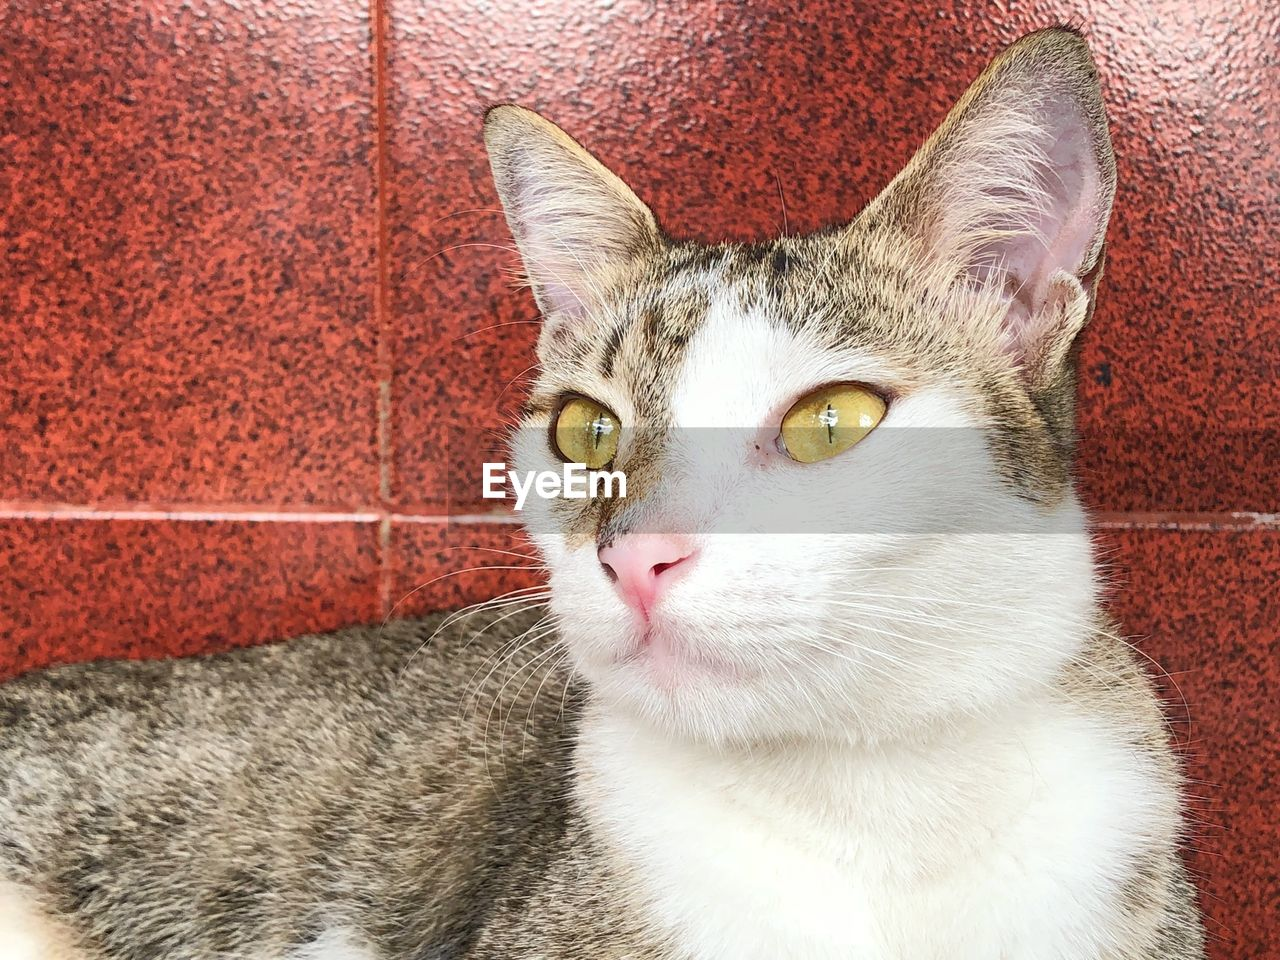 cat, domestic cat, domestic, feline, domestic animals, pets, mammal, one animal, vertebrate, portrait, close-up, looking at camera, indoors, whisker, no people, relaxation, looking, animal eye, tabby, yellow eyes